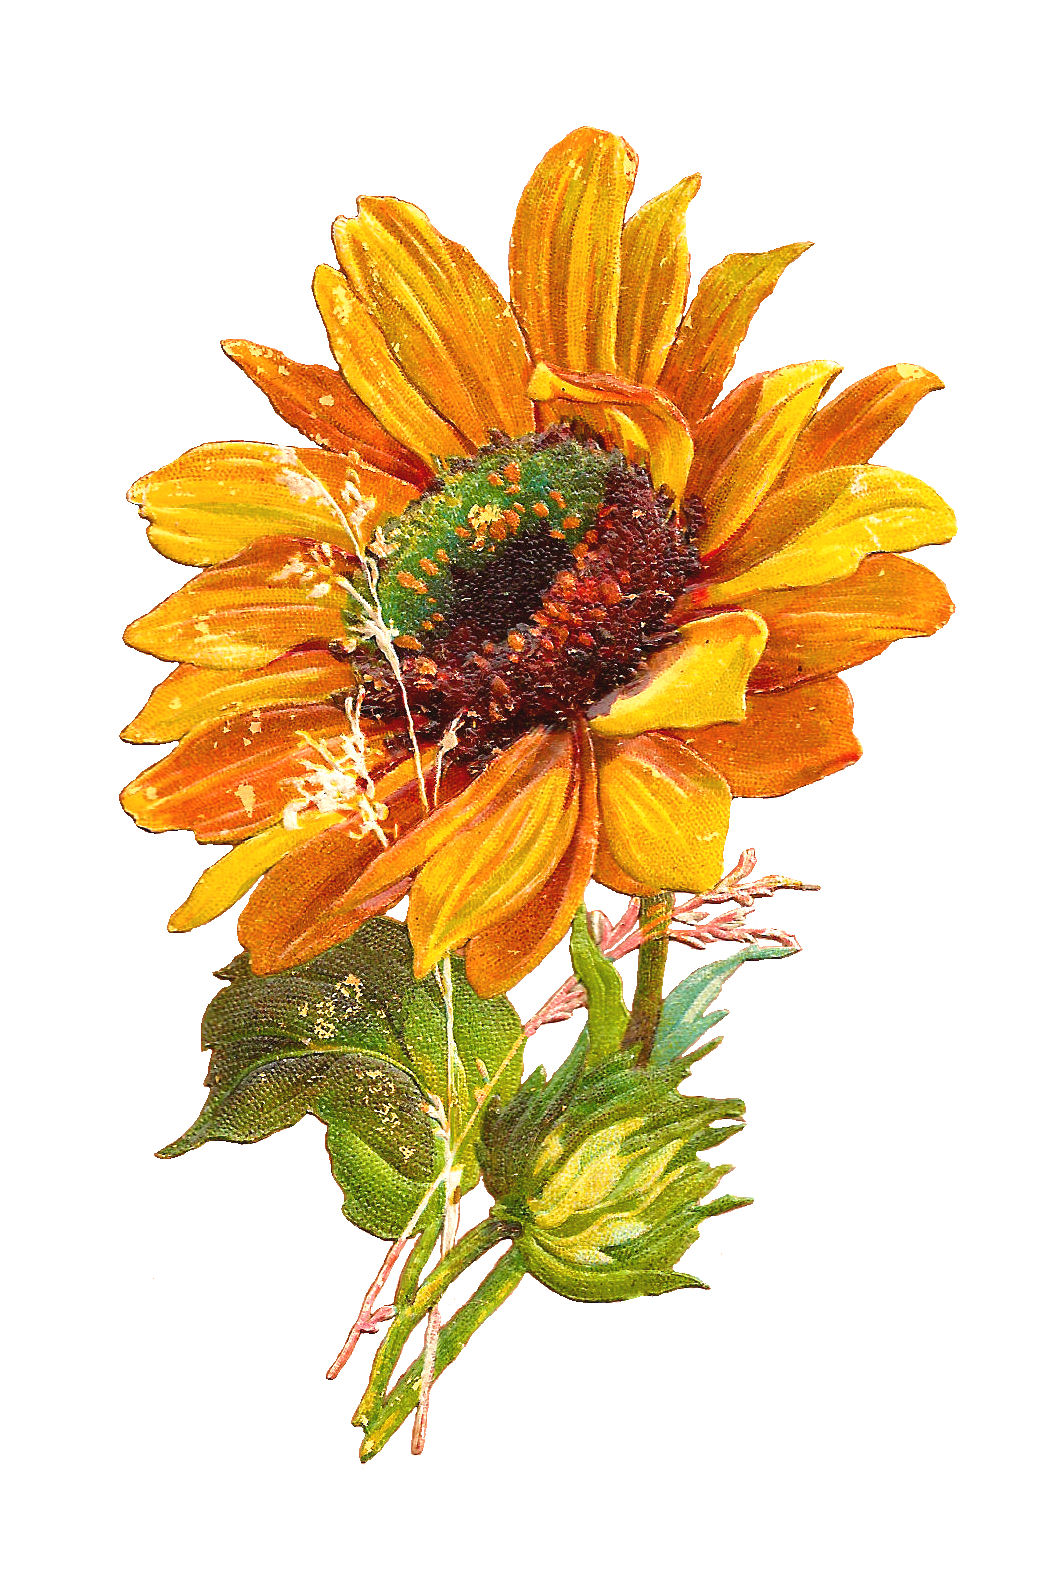 Sunflower  free antique images free flower graphic sunflower clip art of 2